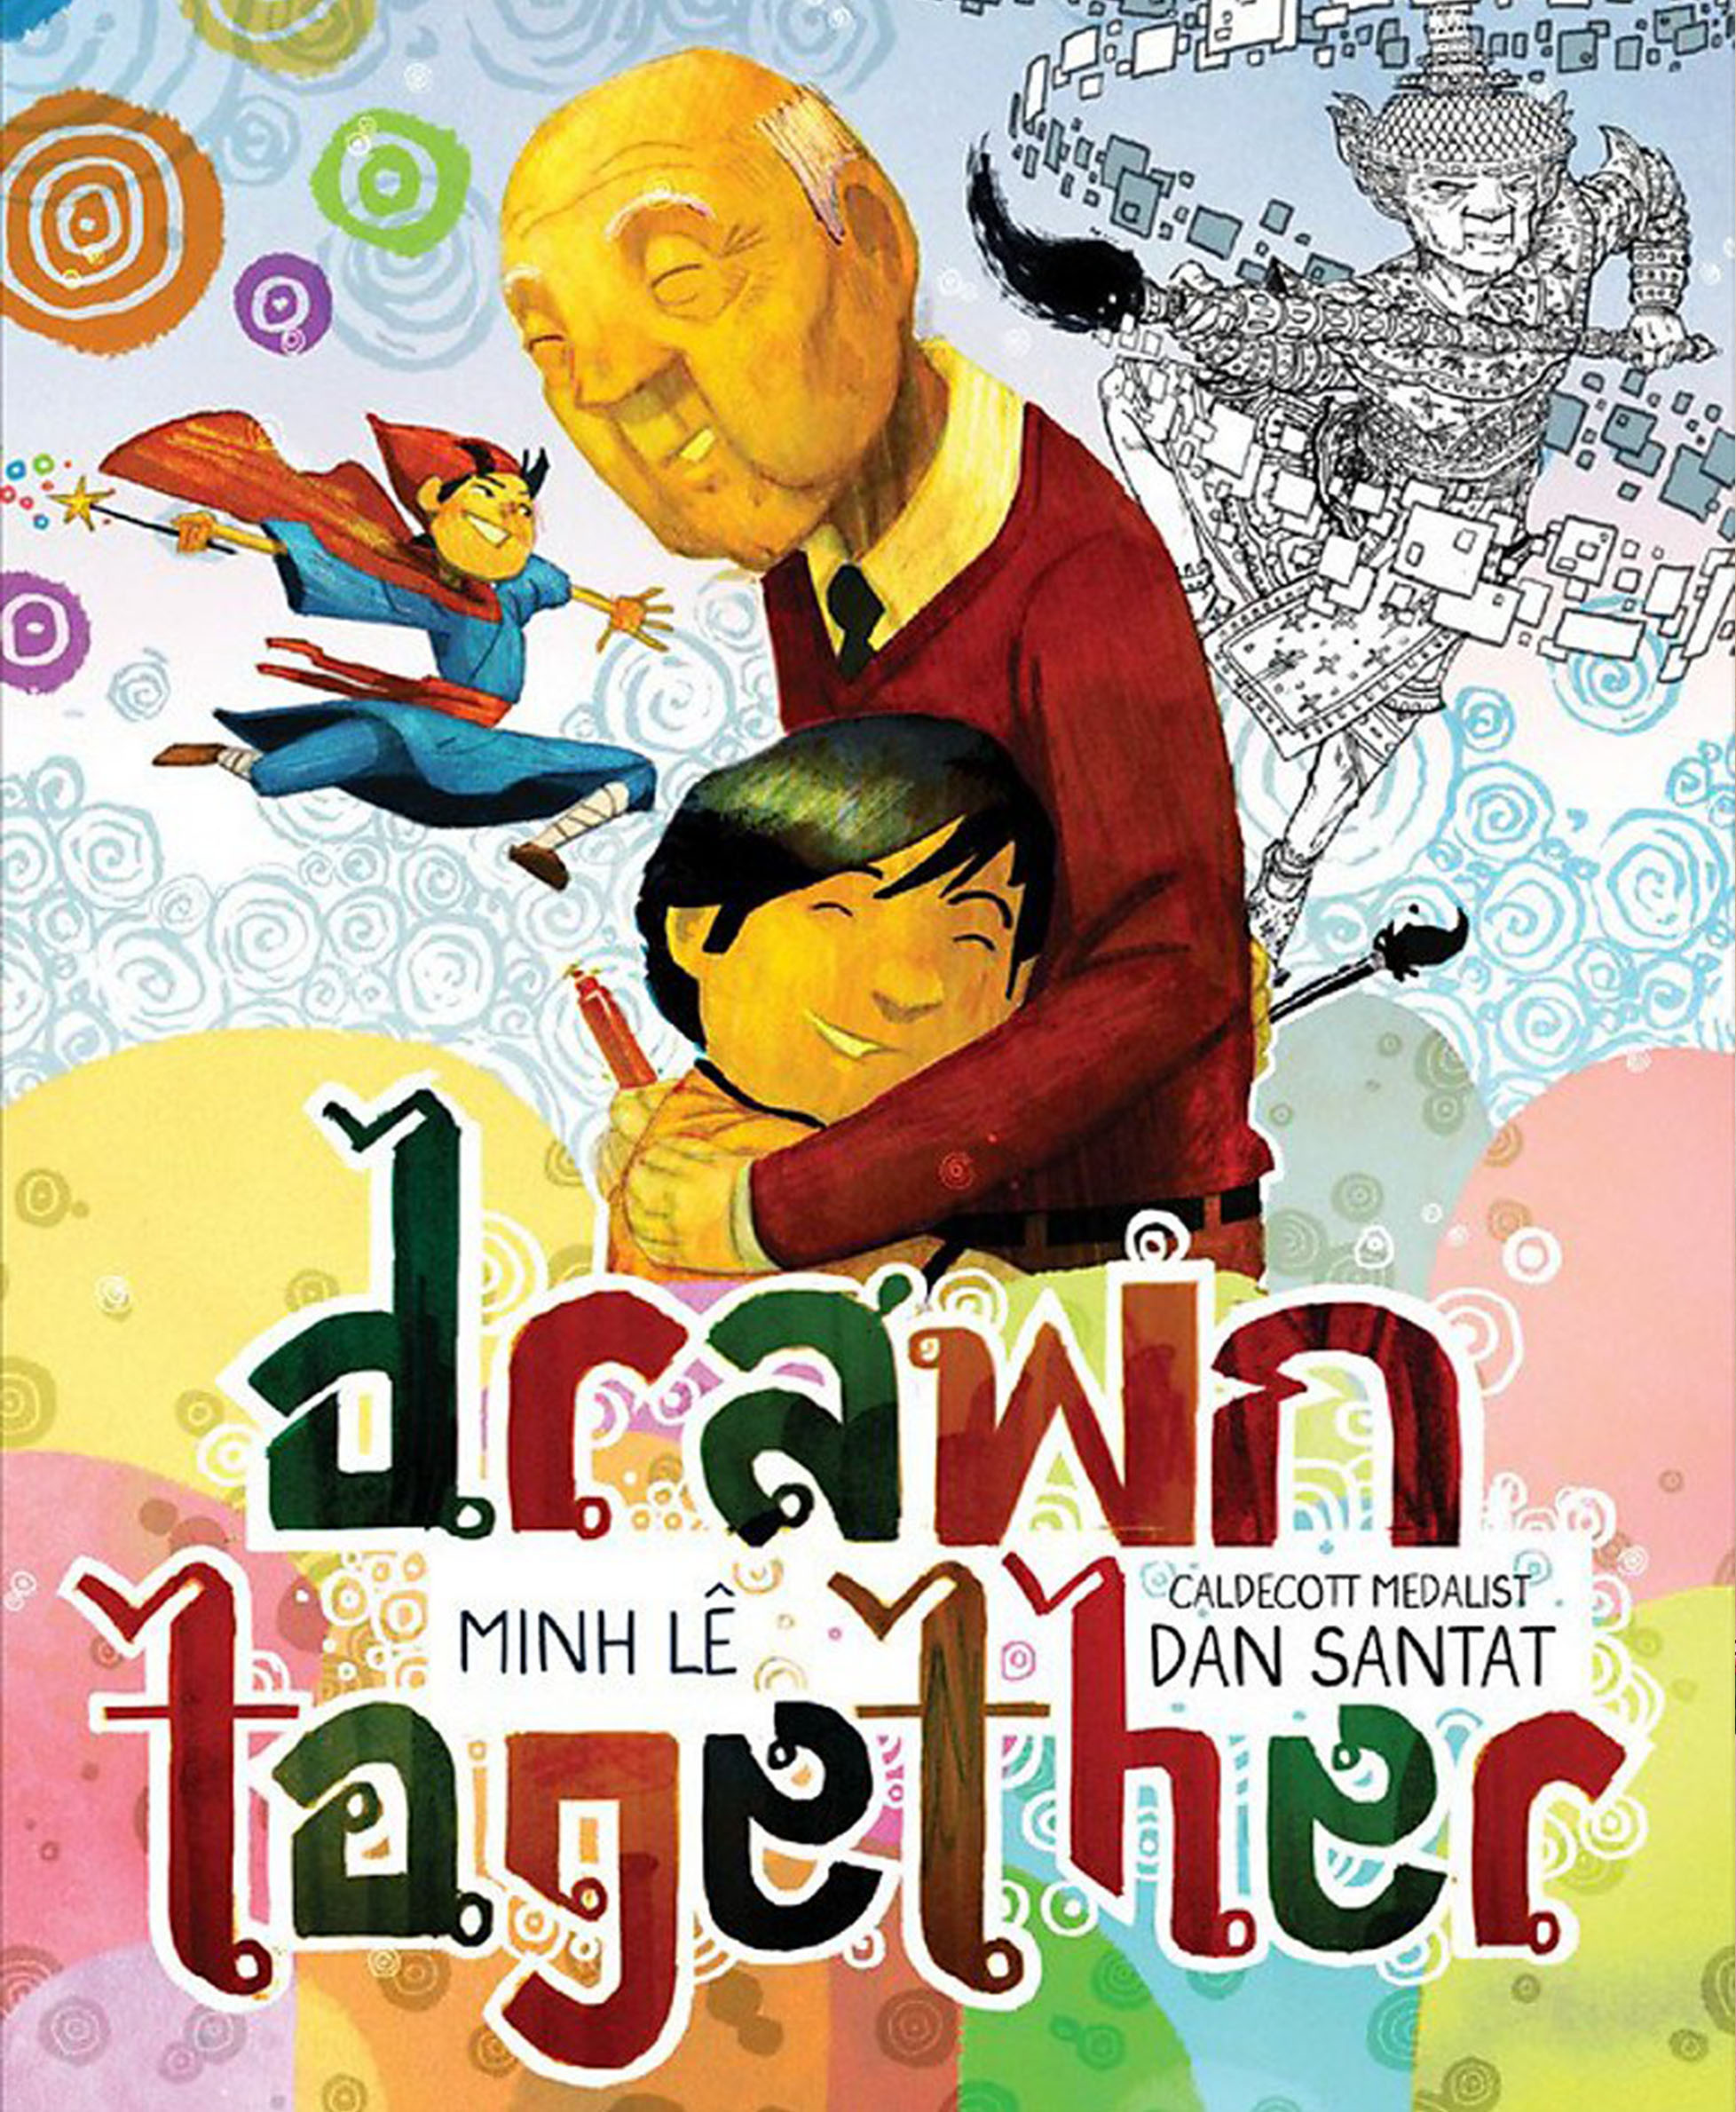 DRAWN TOGETHER - MINH LE & DAN SANTAT